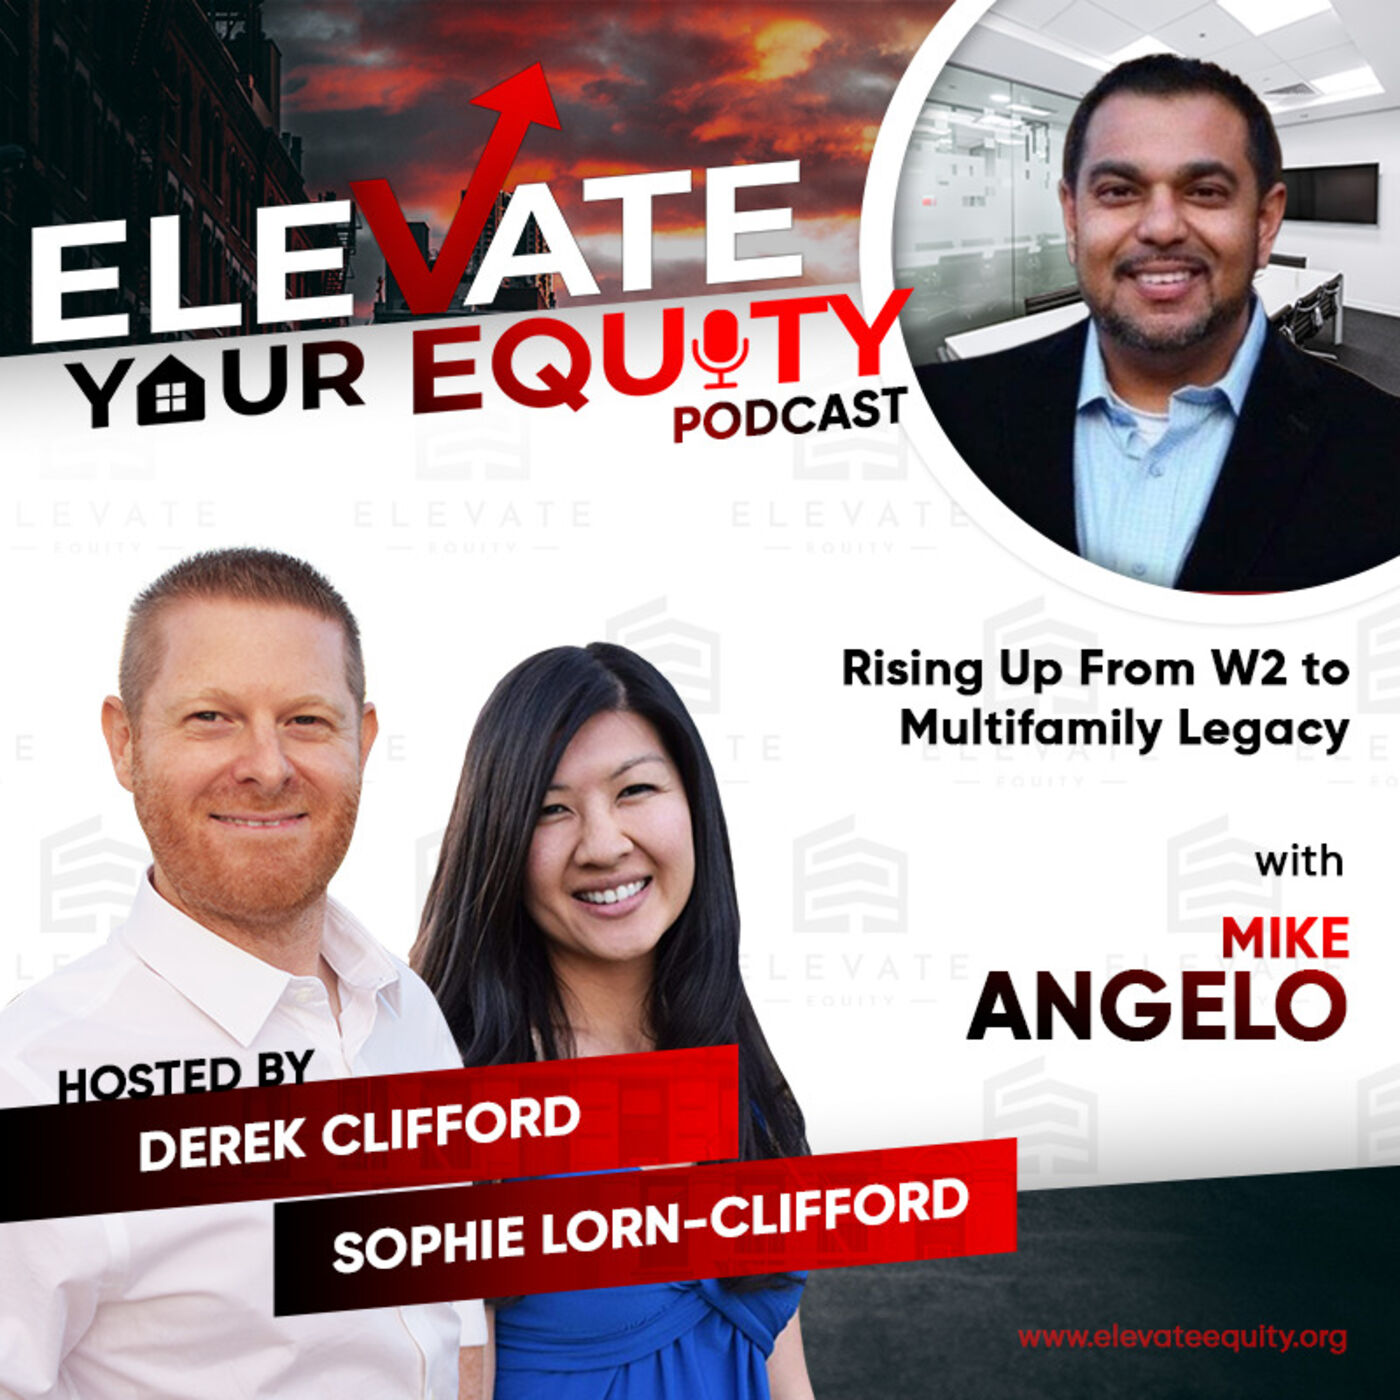 Ep 38 - Rising Up From W2 to Multifamily Legacy with Mike Angelo